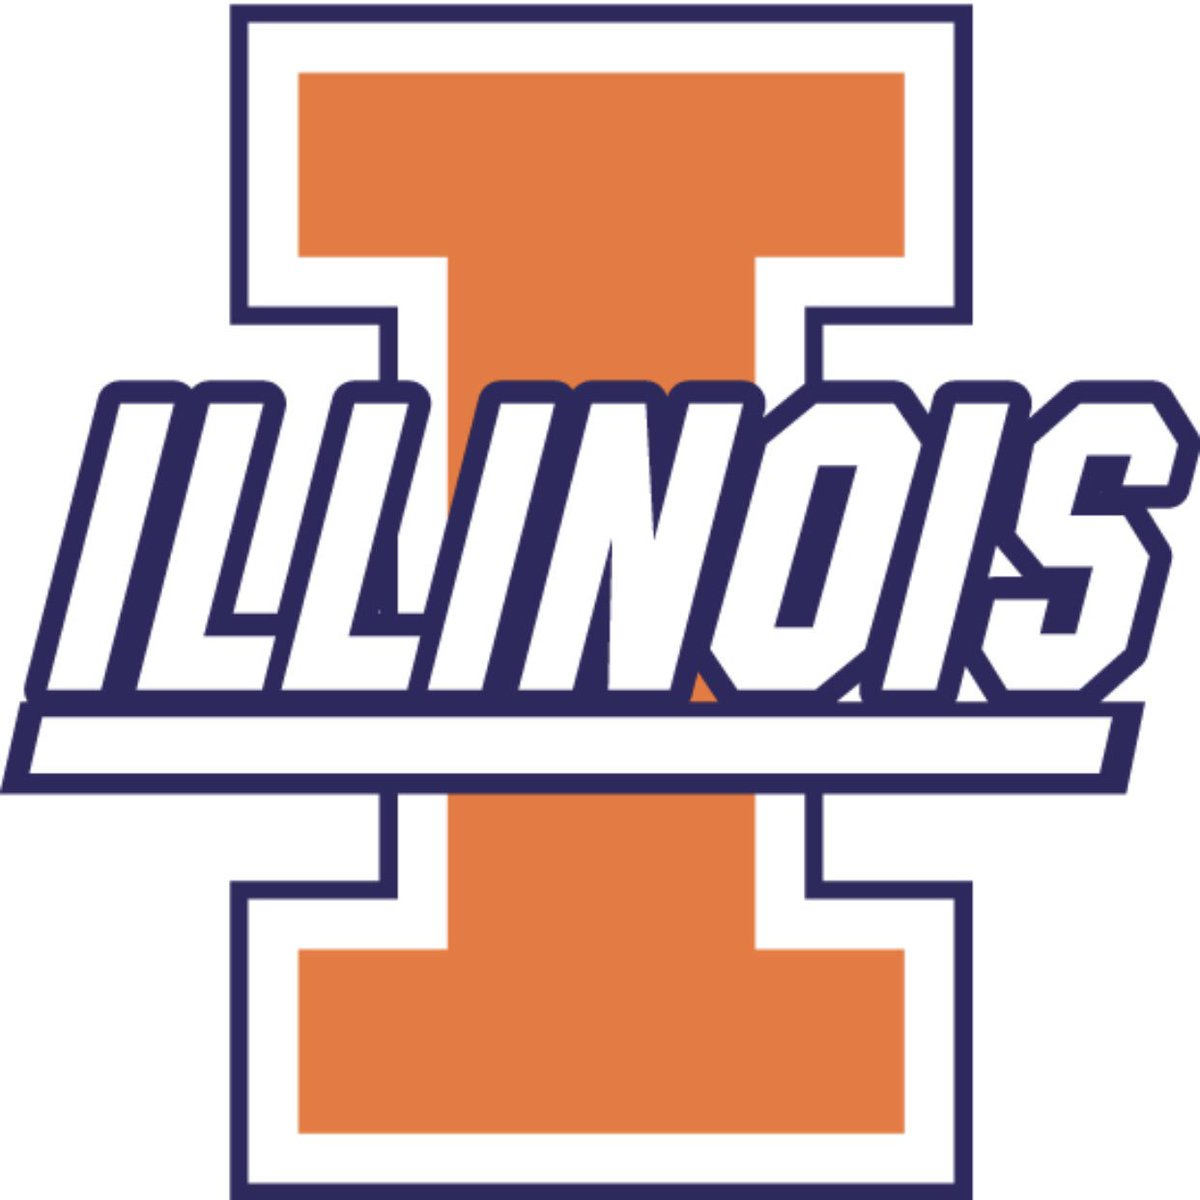 Blessed and honored to receive an offer from The University of Illinois. Thank you to Coach Underwood, Coach Walker and the rest of the staff for this great opportunity!! #GoIllini<br>http://pic.twitter.com/lEqtUbtzEQ